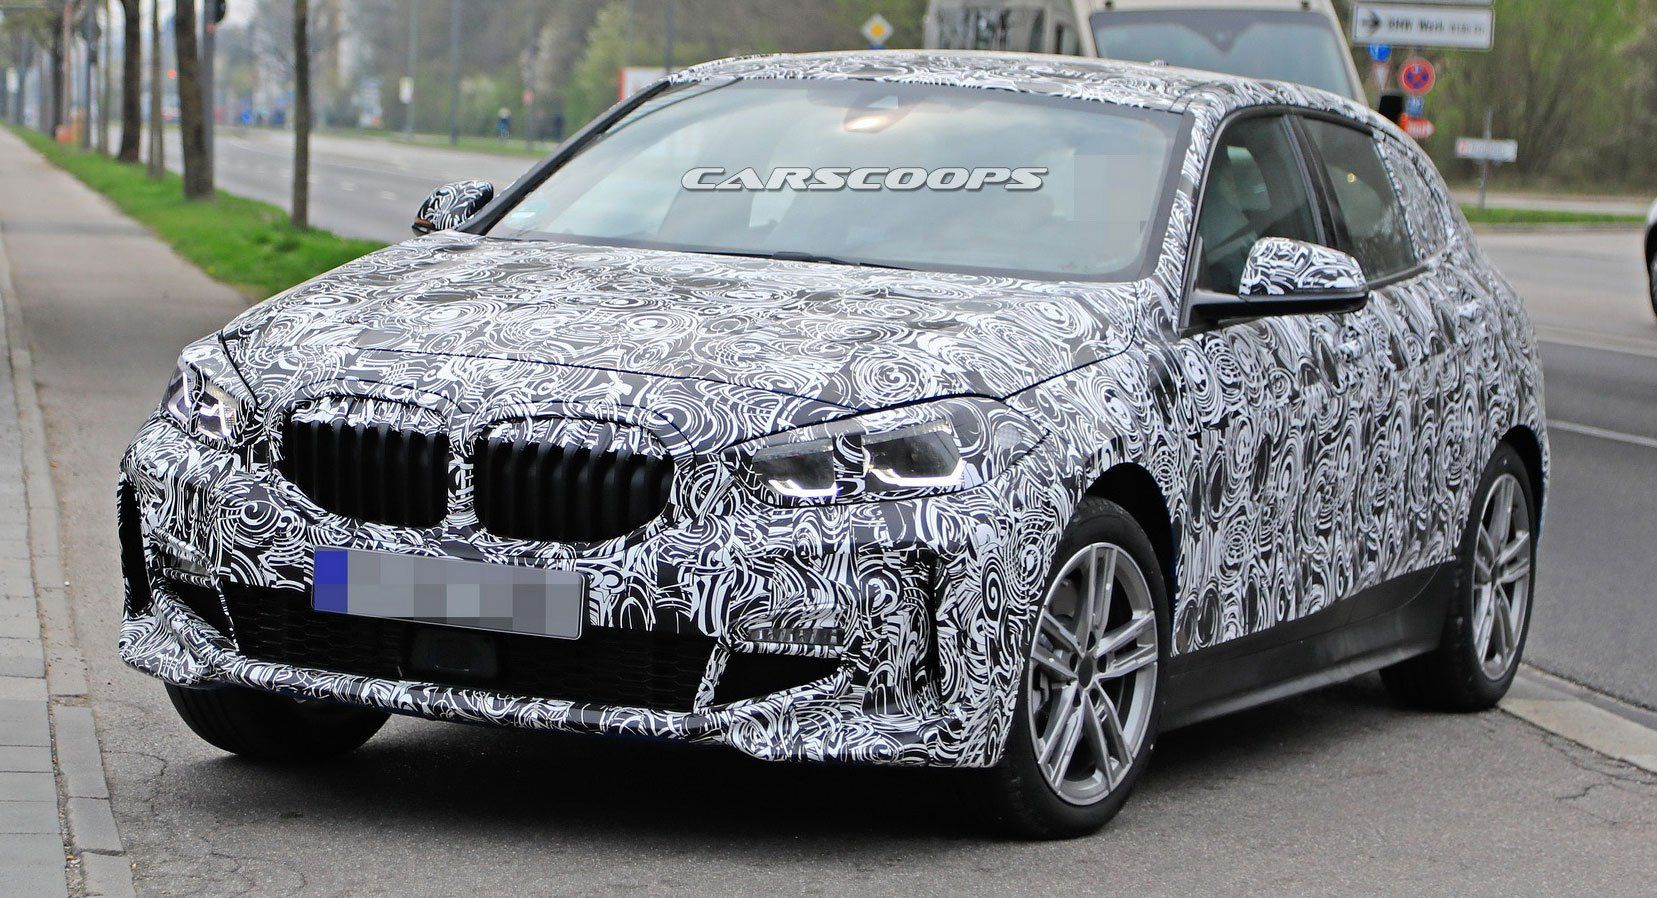 2020 Bmw 1 Series Here S A Better Look At Fwd Hatch S Face While